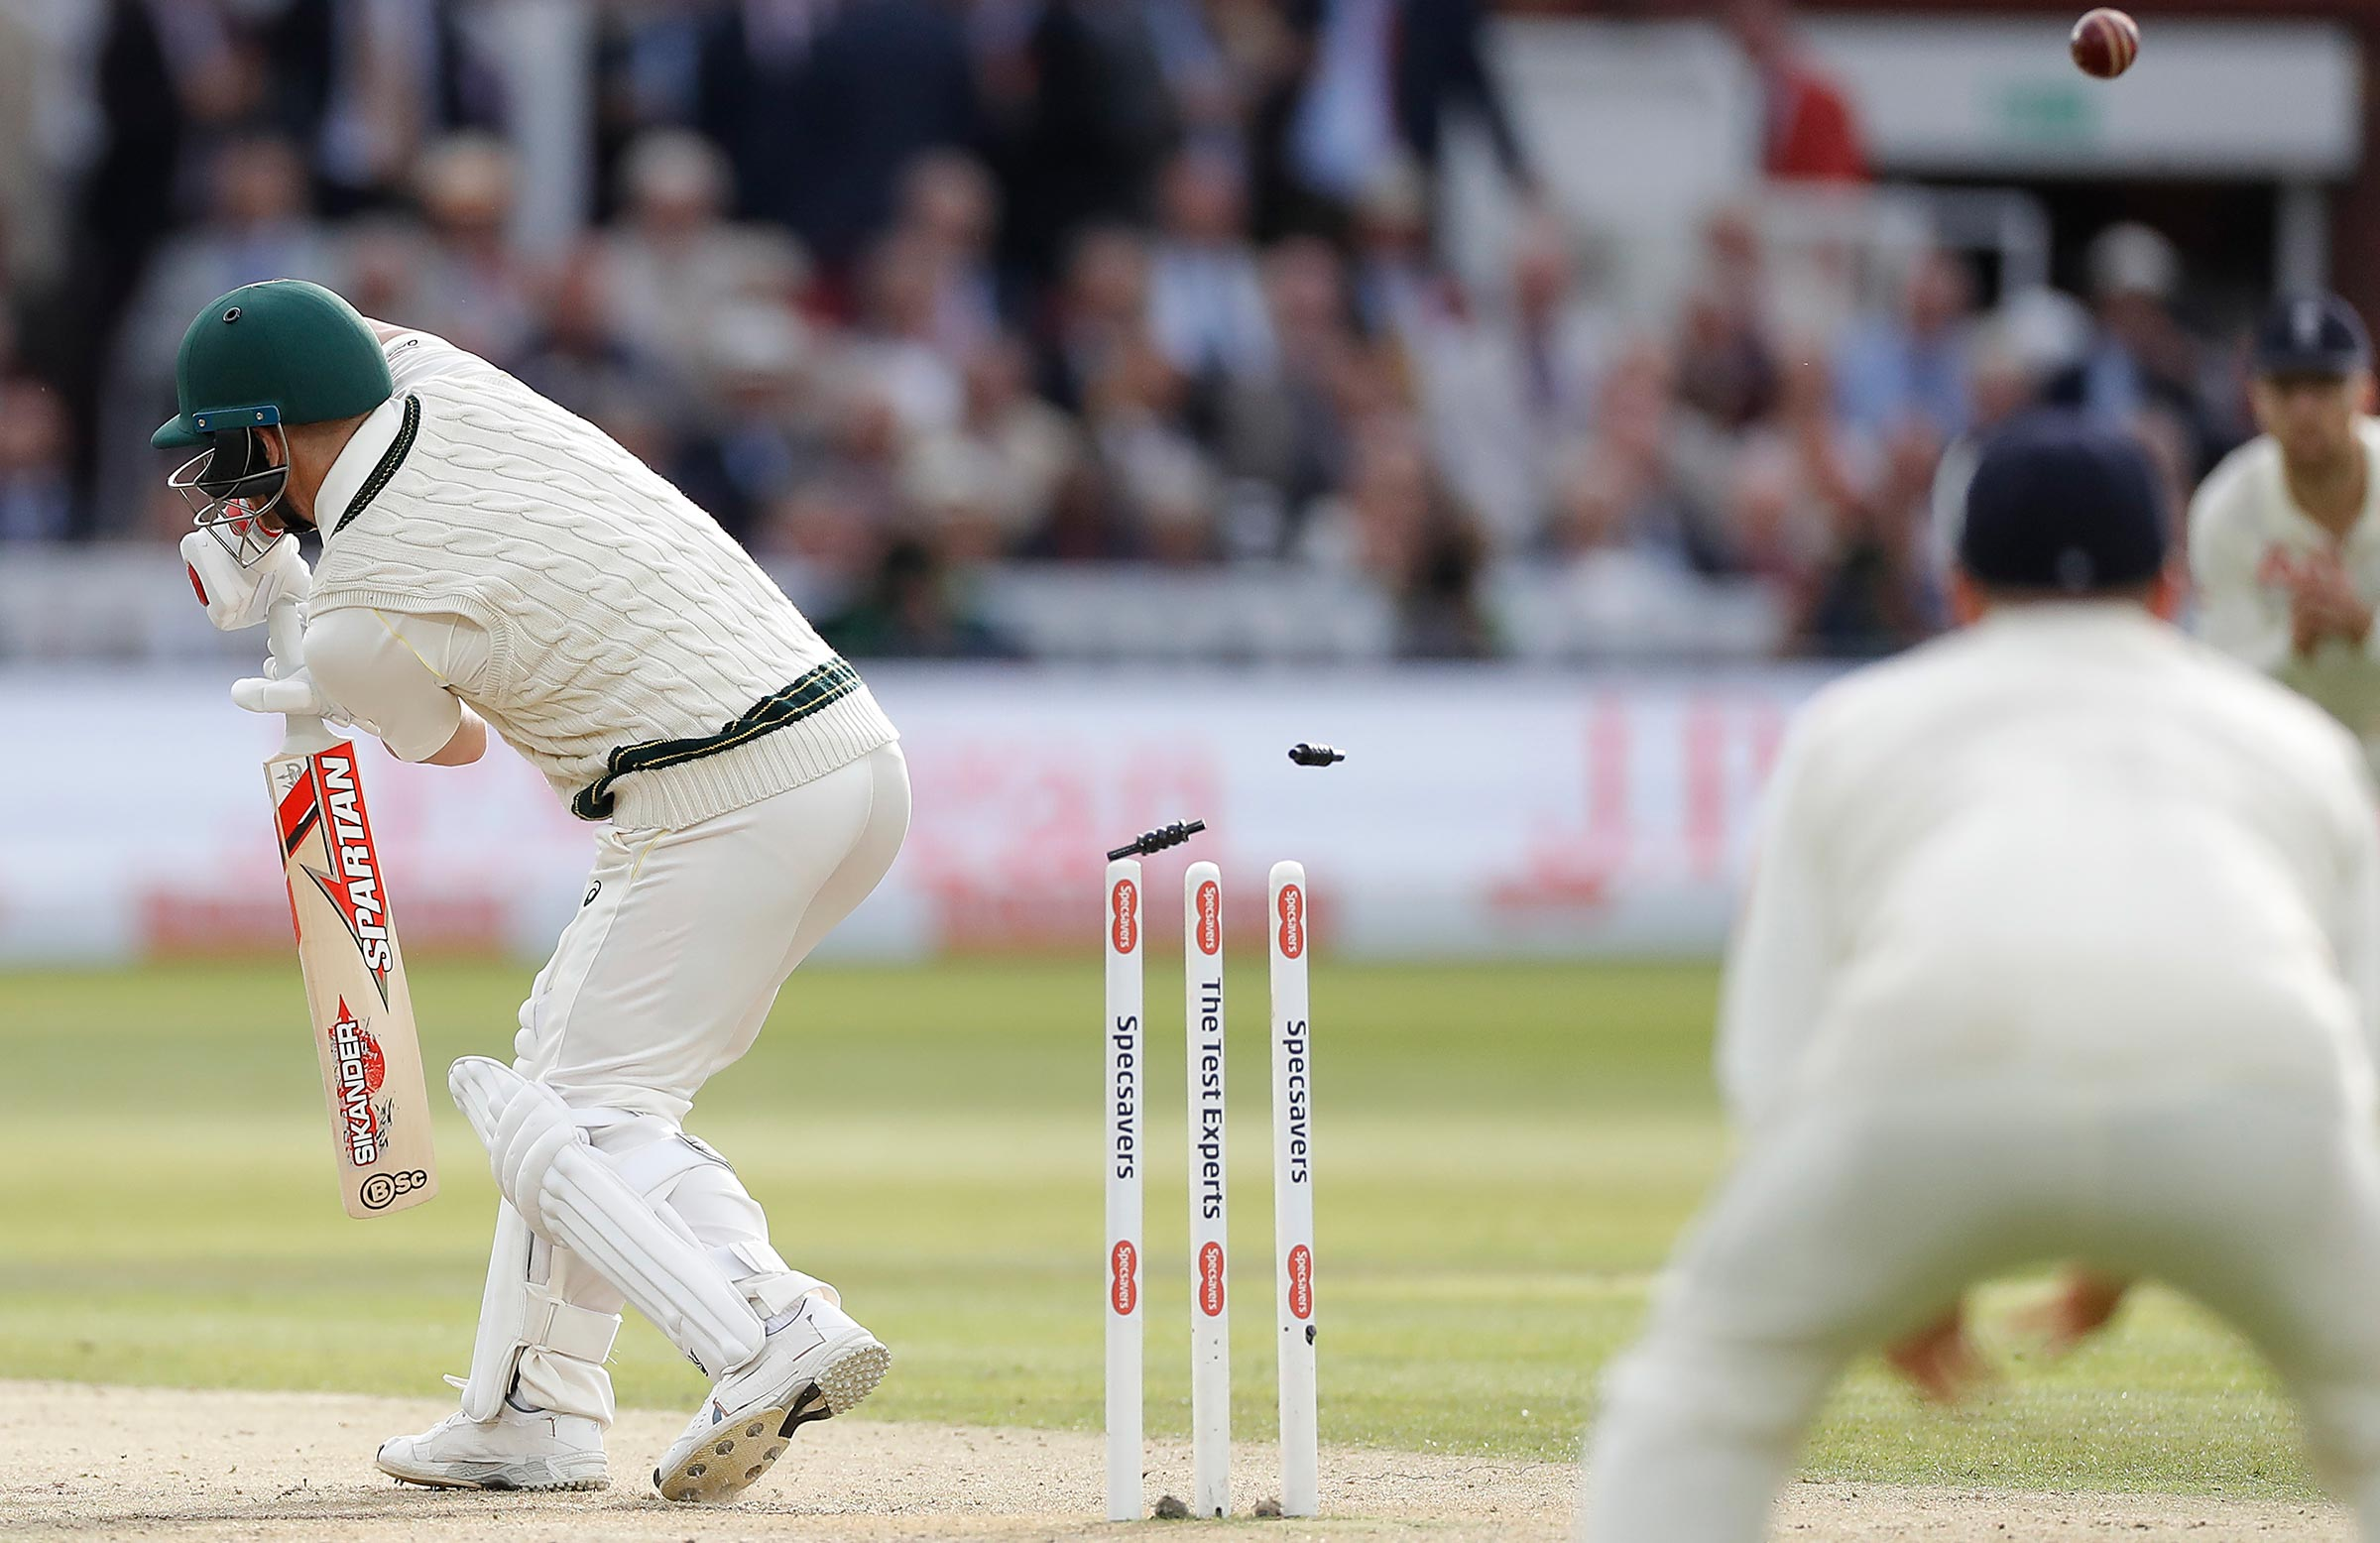 Warner is bowled late on day two at Lord's